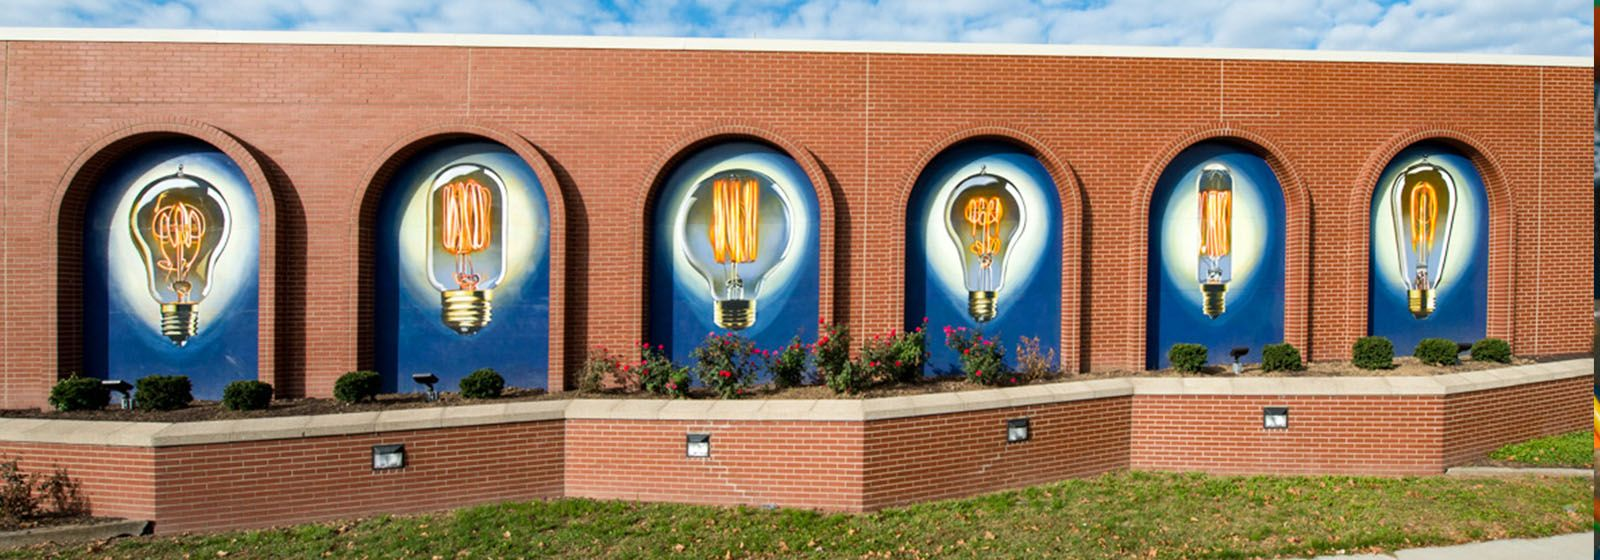 Giant lightbulbs help beautify Cincinnati